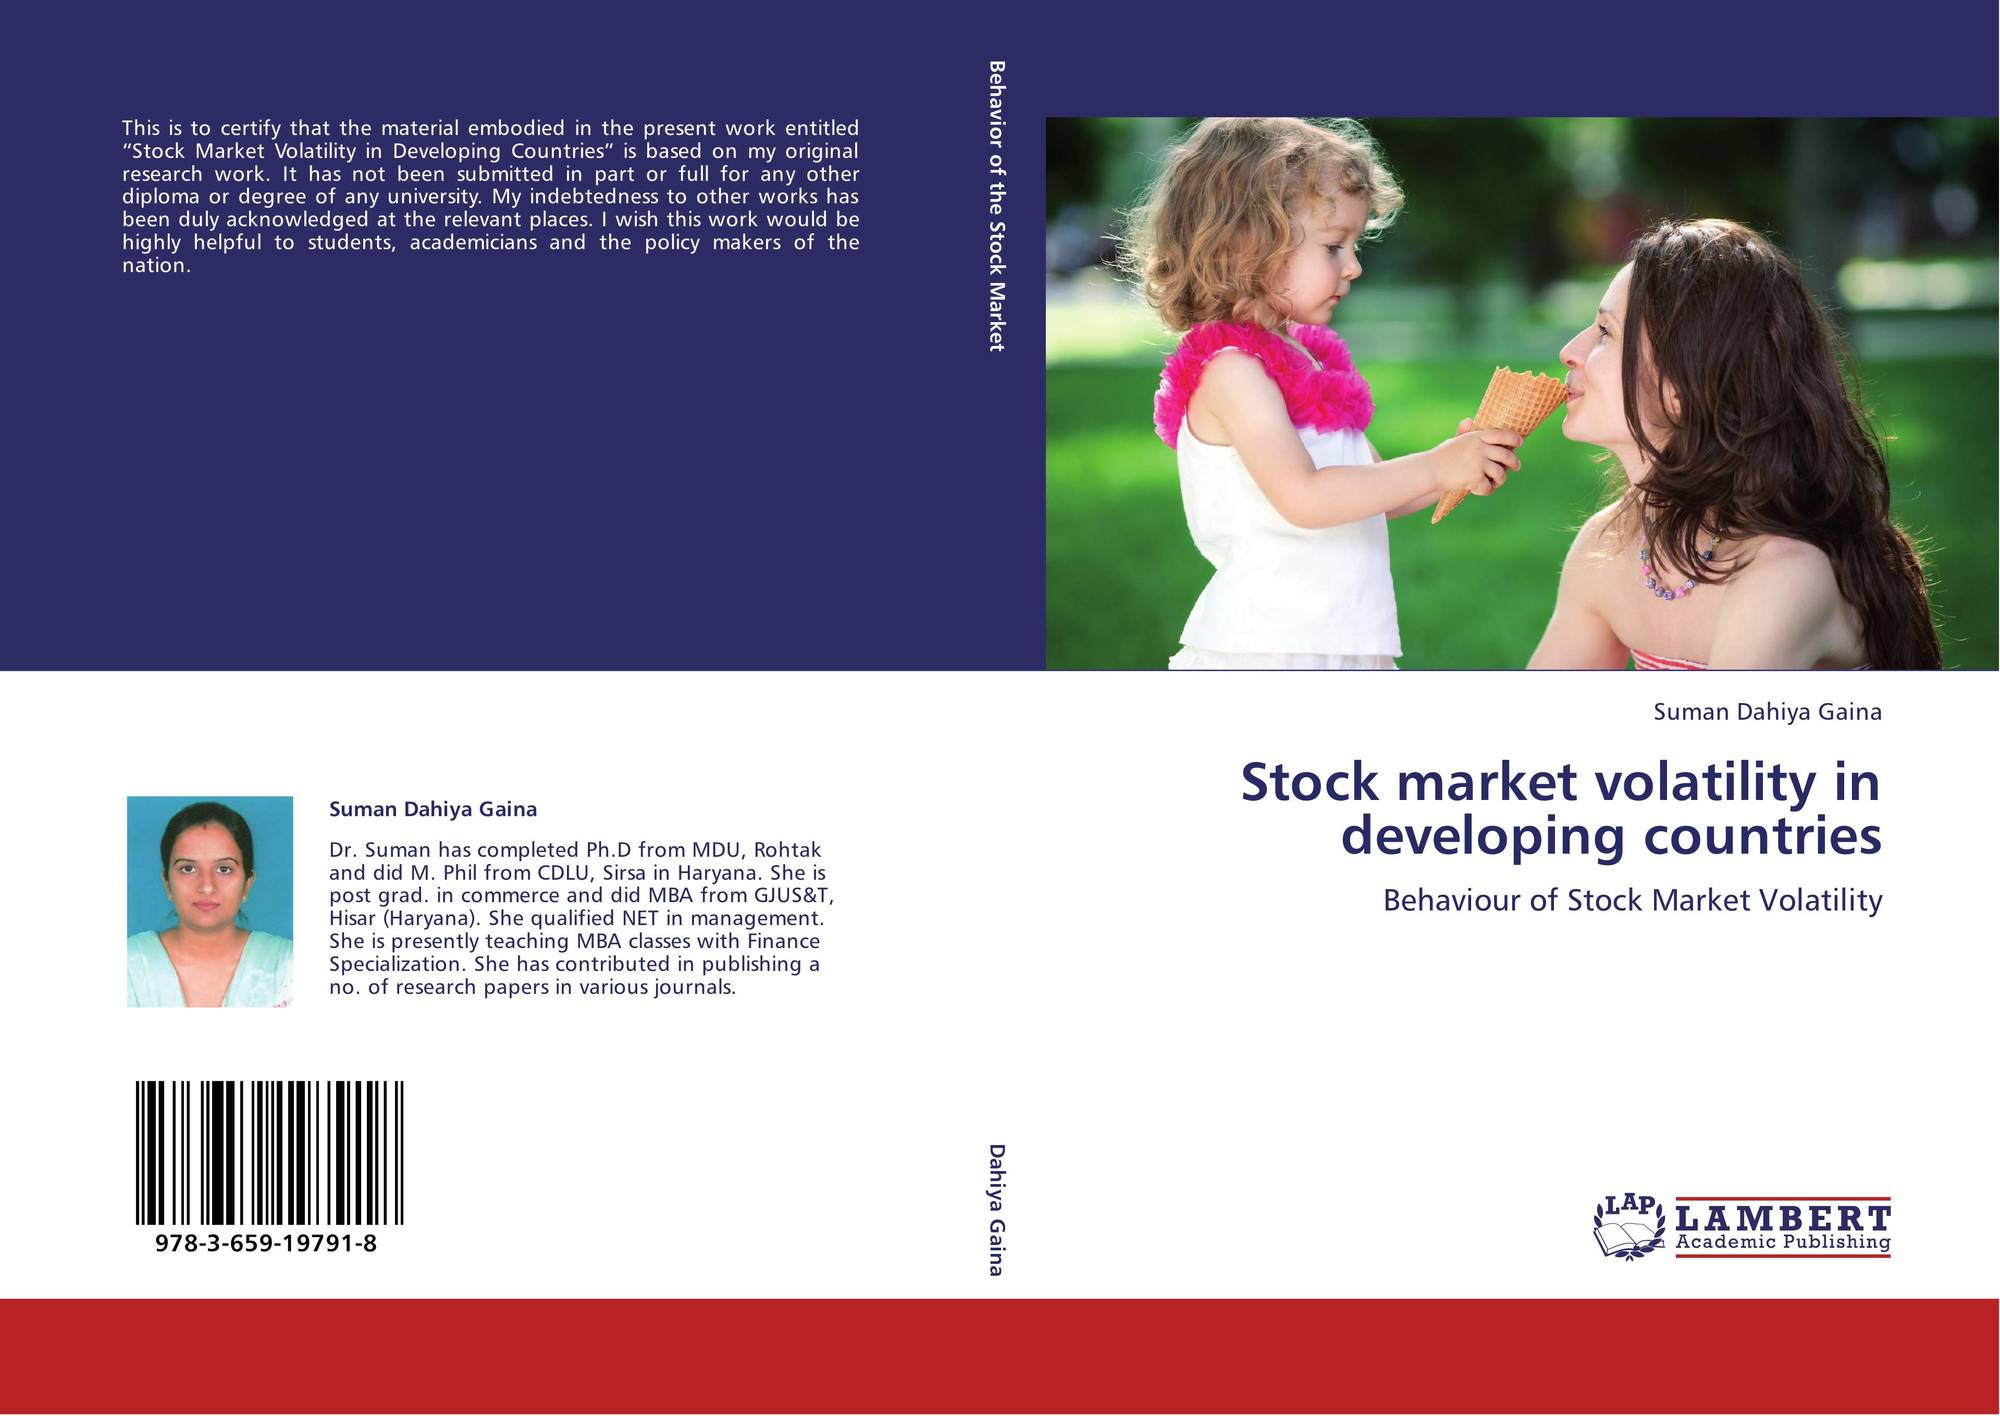 research paper on stock market volatility Recent equity volatility can be attributed to concerns about federal reserve  policy  planning & research  the recent upswing in equity market volatility  can be attributed largely to investor concerns about the future.